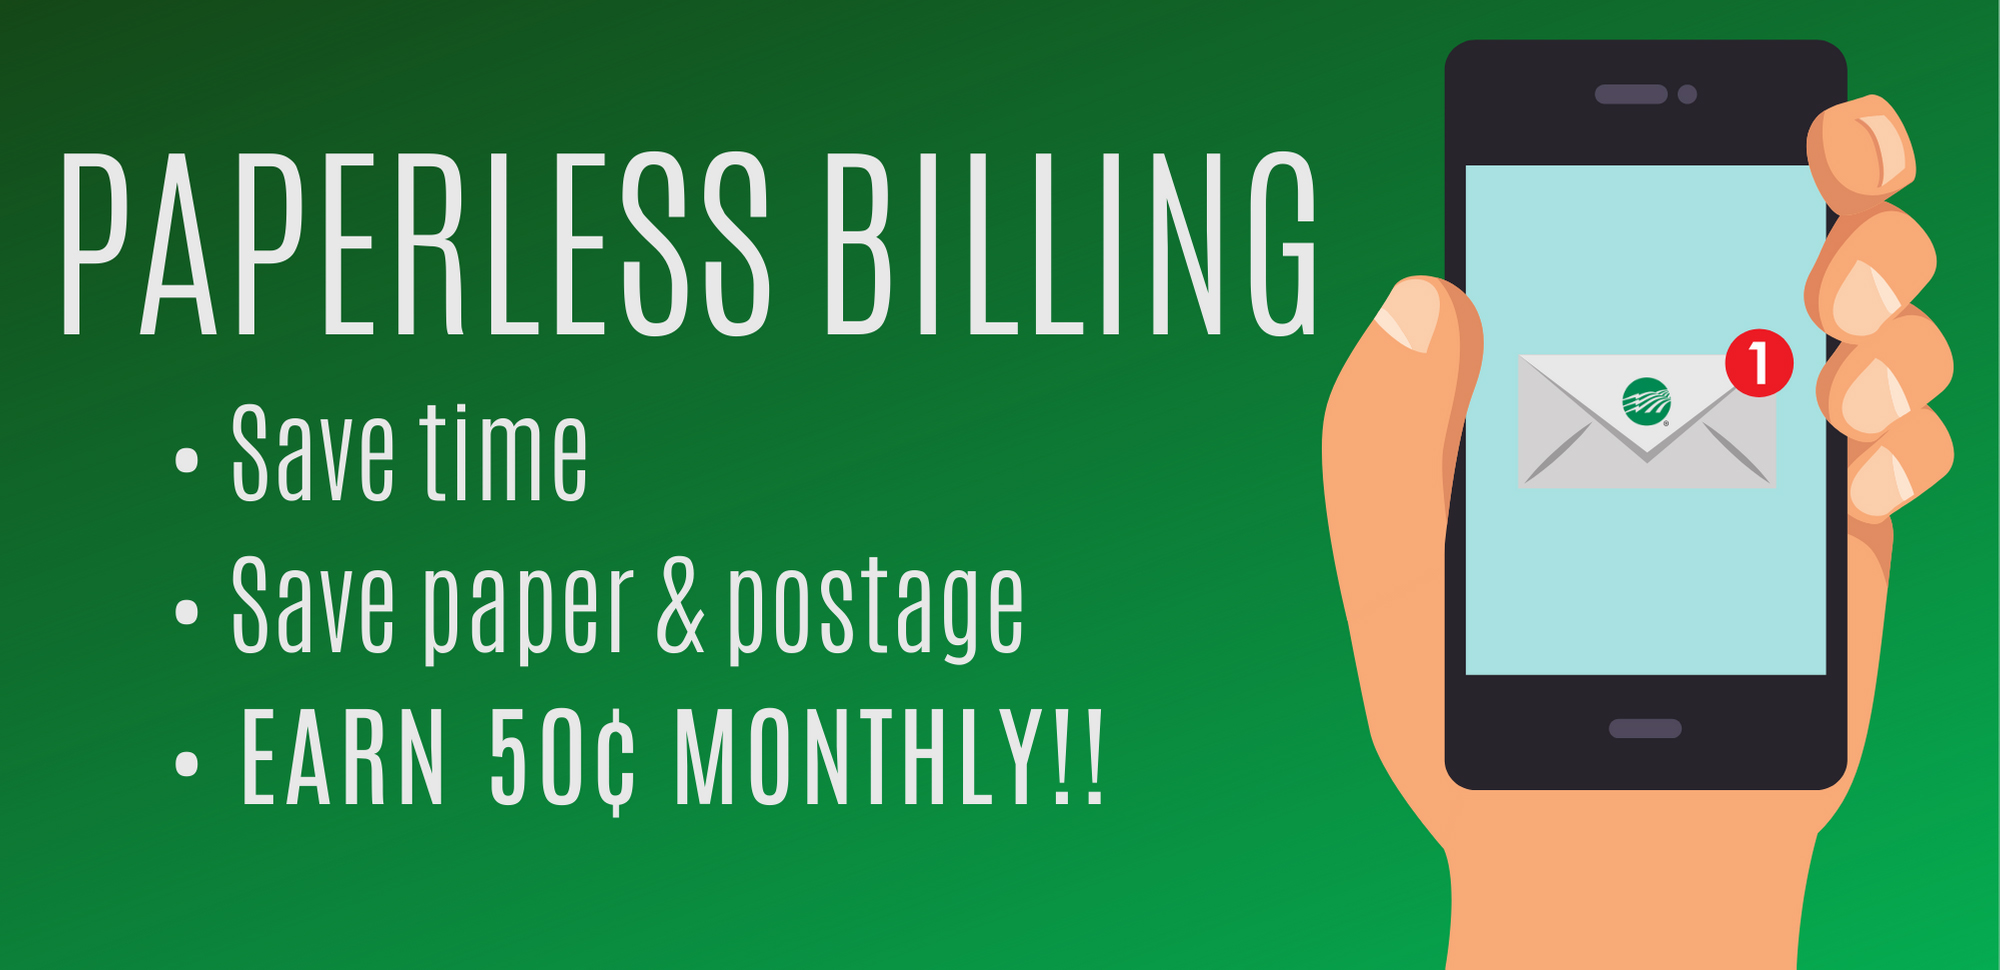 Benefits of Paperless Billing